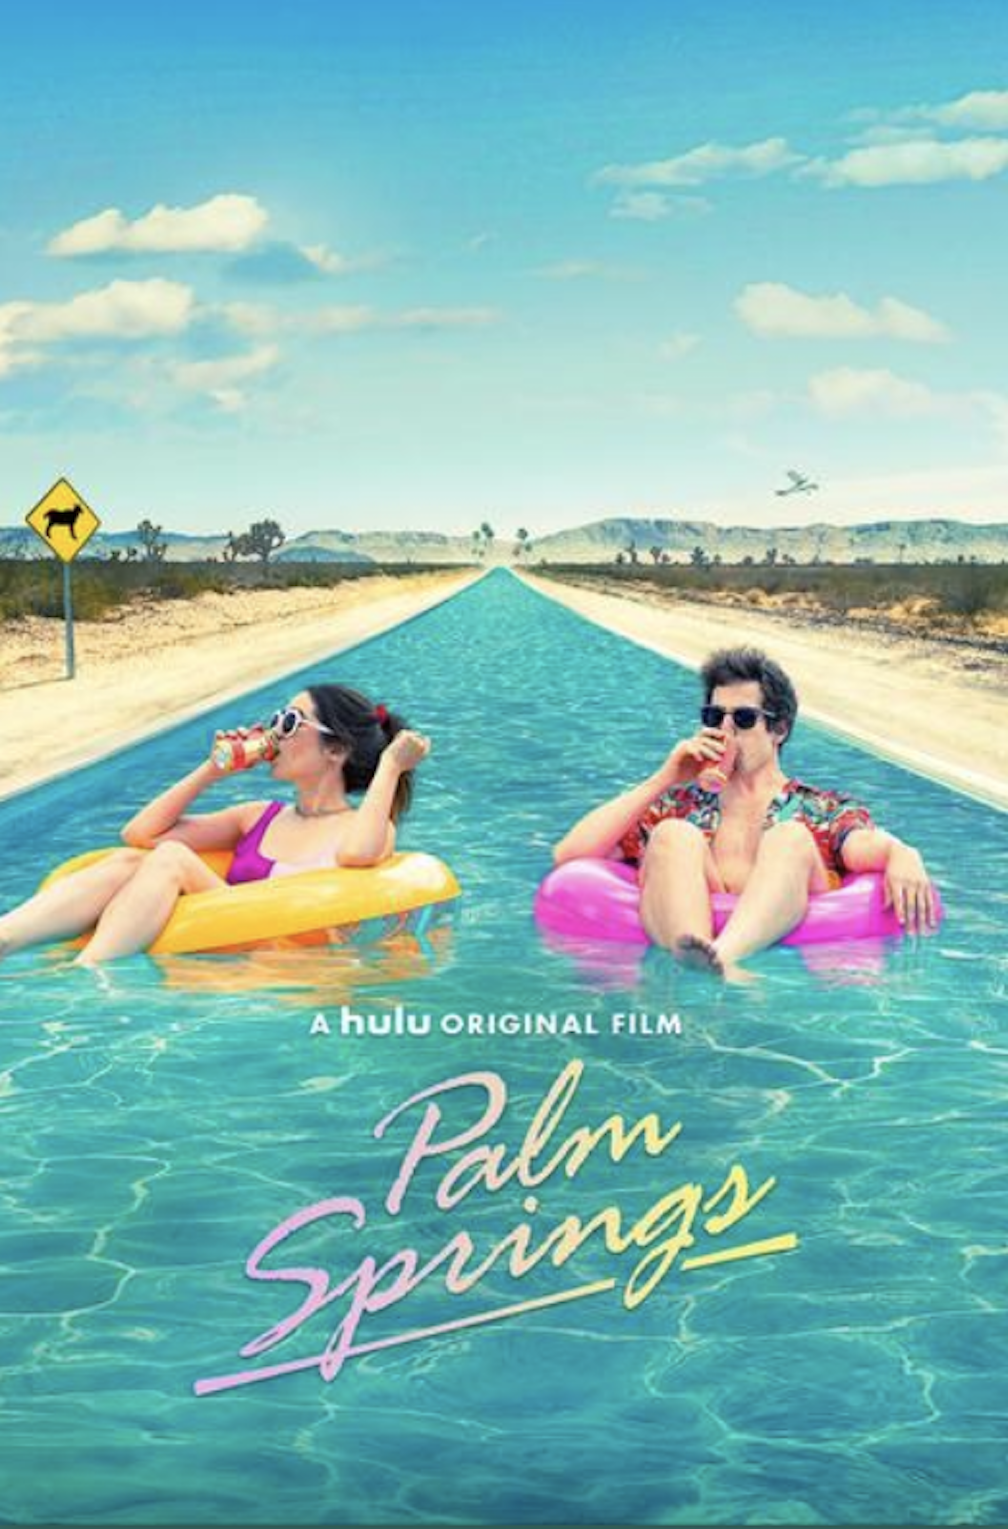 palm springs review, palm springs hulu, hulu original movies, streaming movies, time loop movies